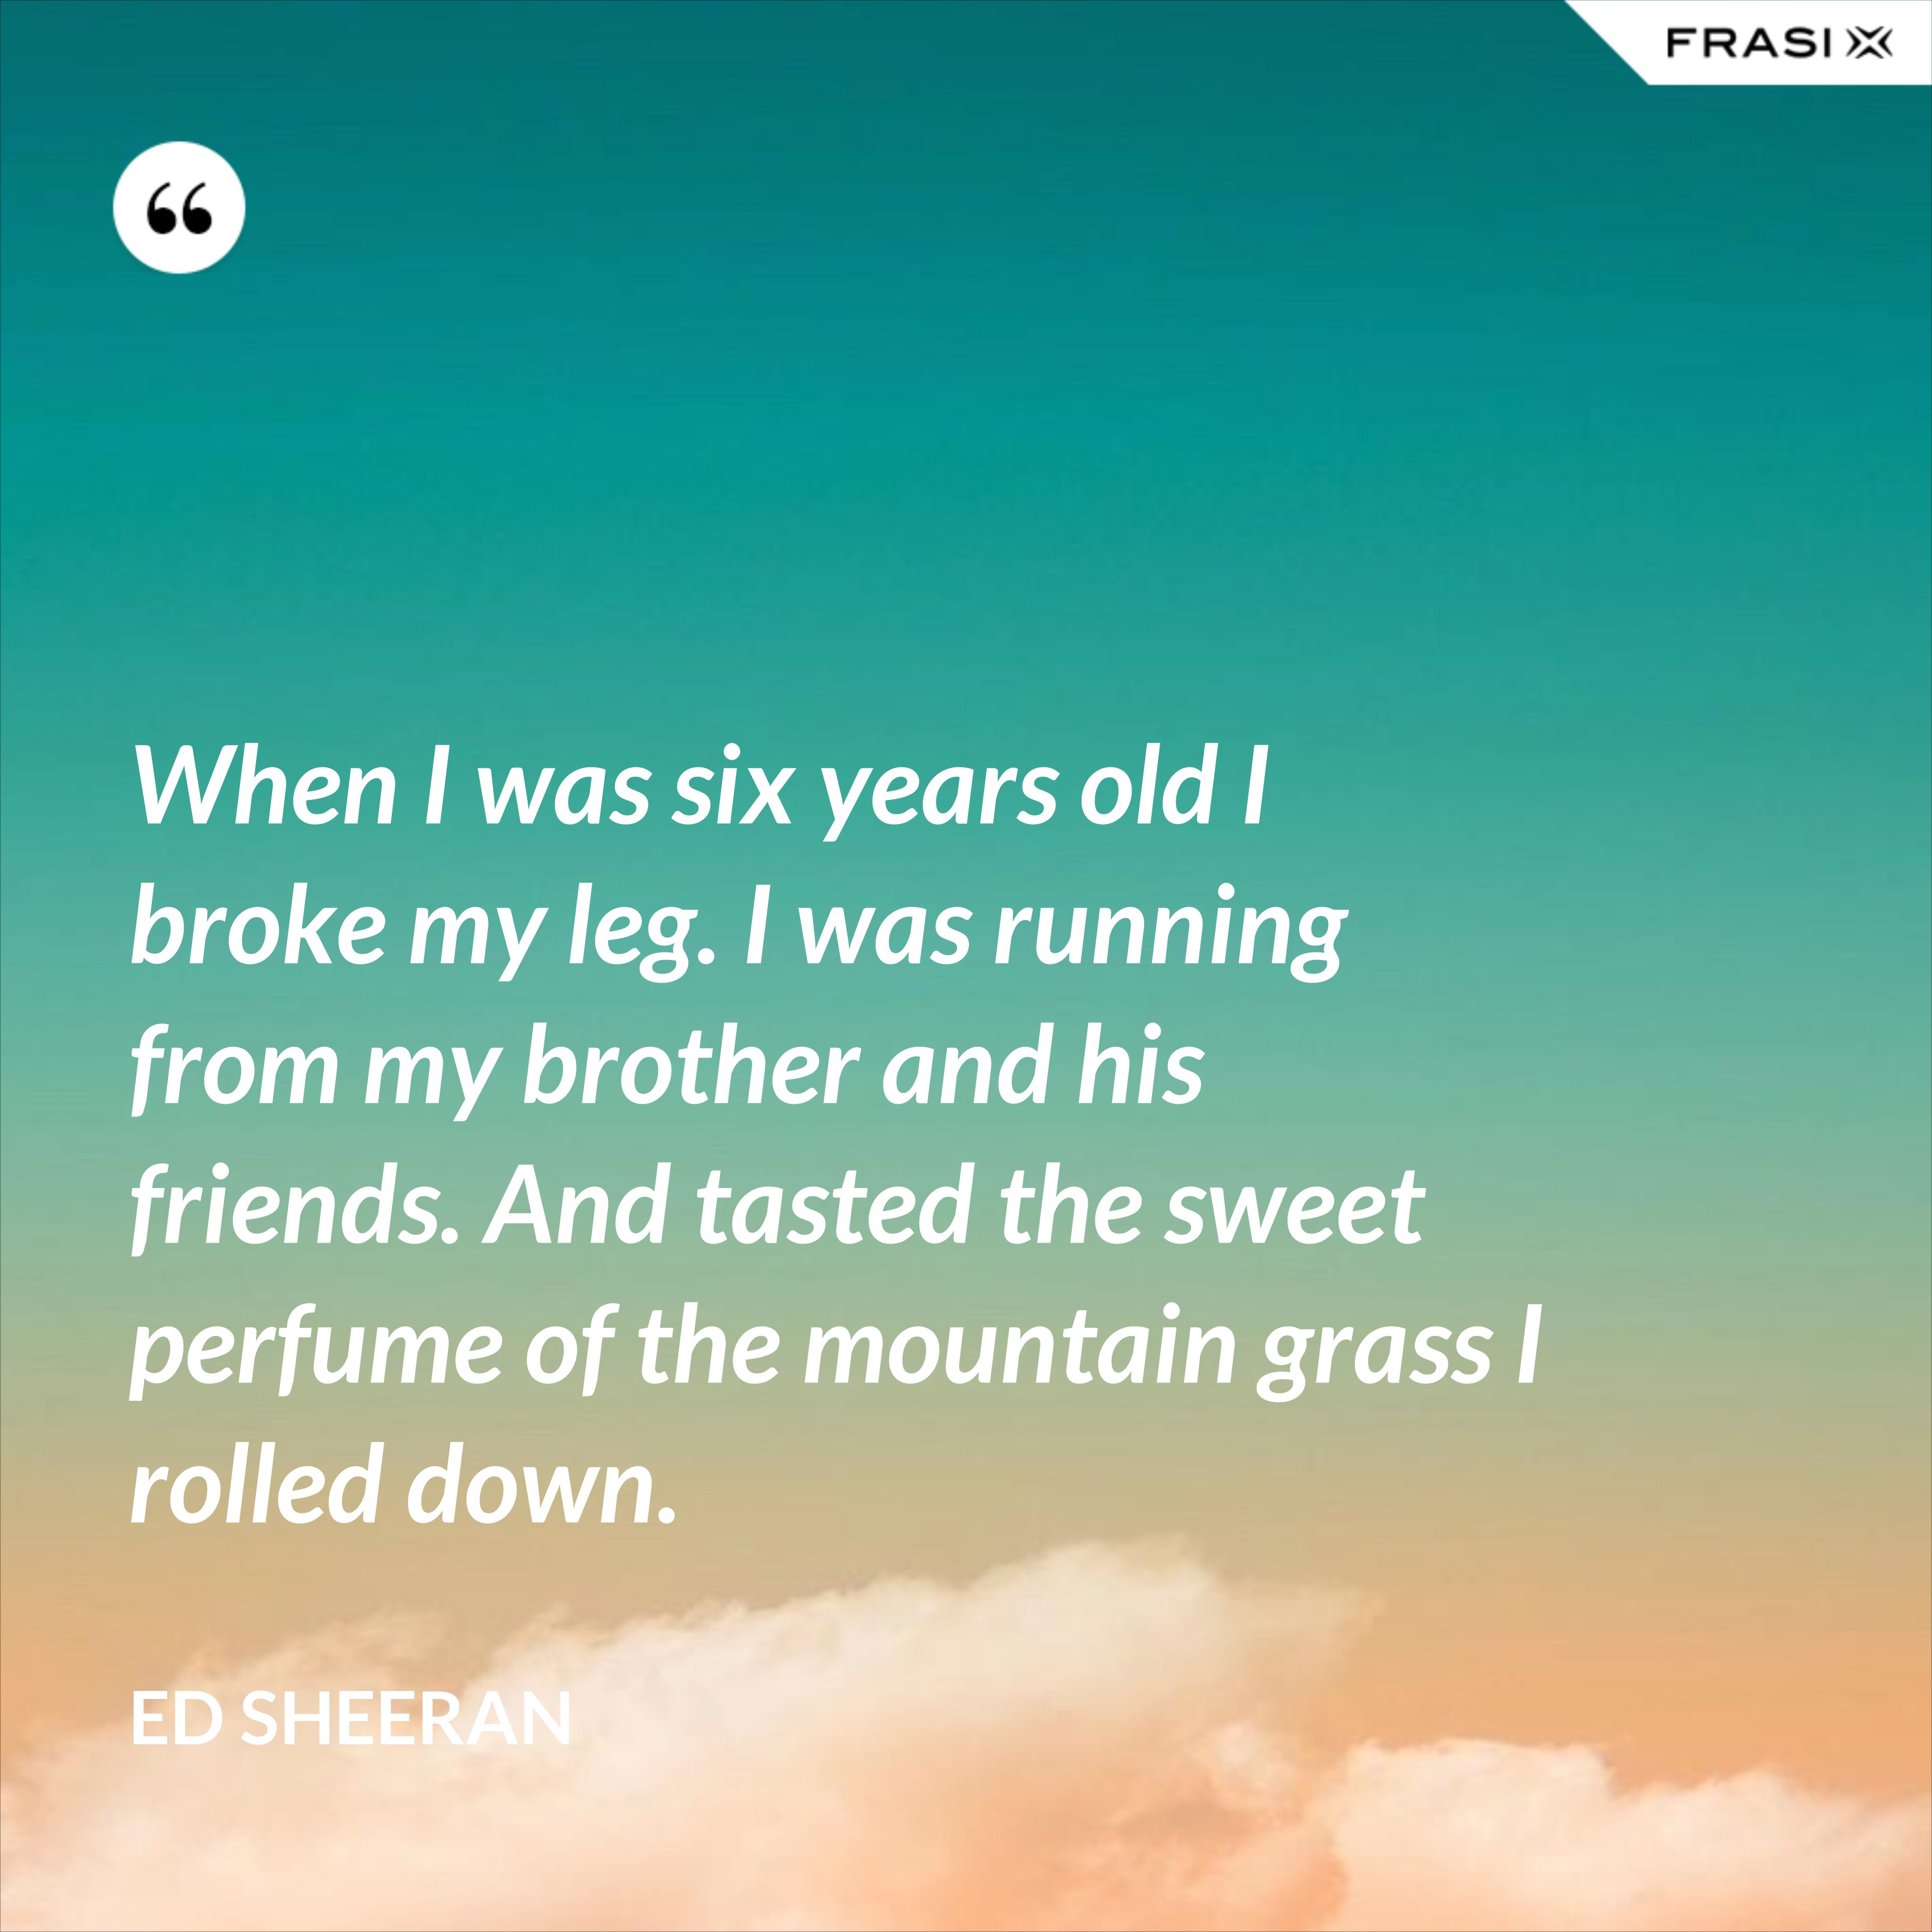 When I was six years old I broke my leg. I was running from my brother and his friends. And tasted the sweet perfume of the mountain grass I rolled down. - Ed Sheeran